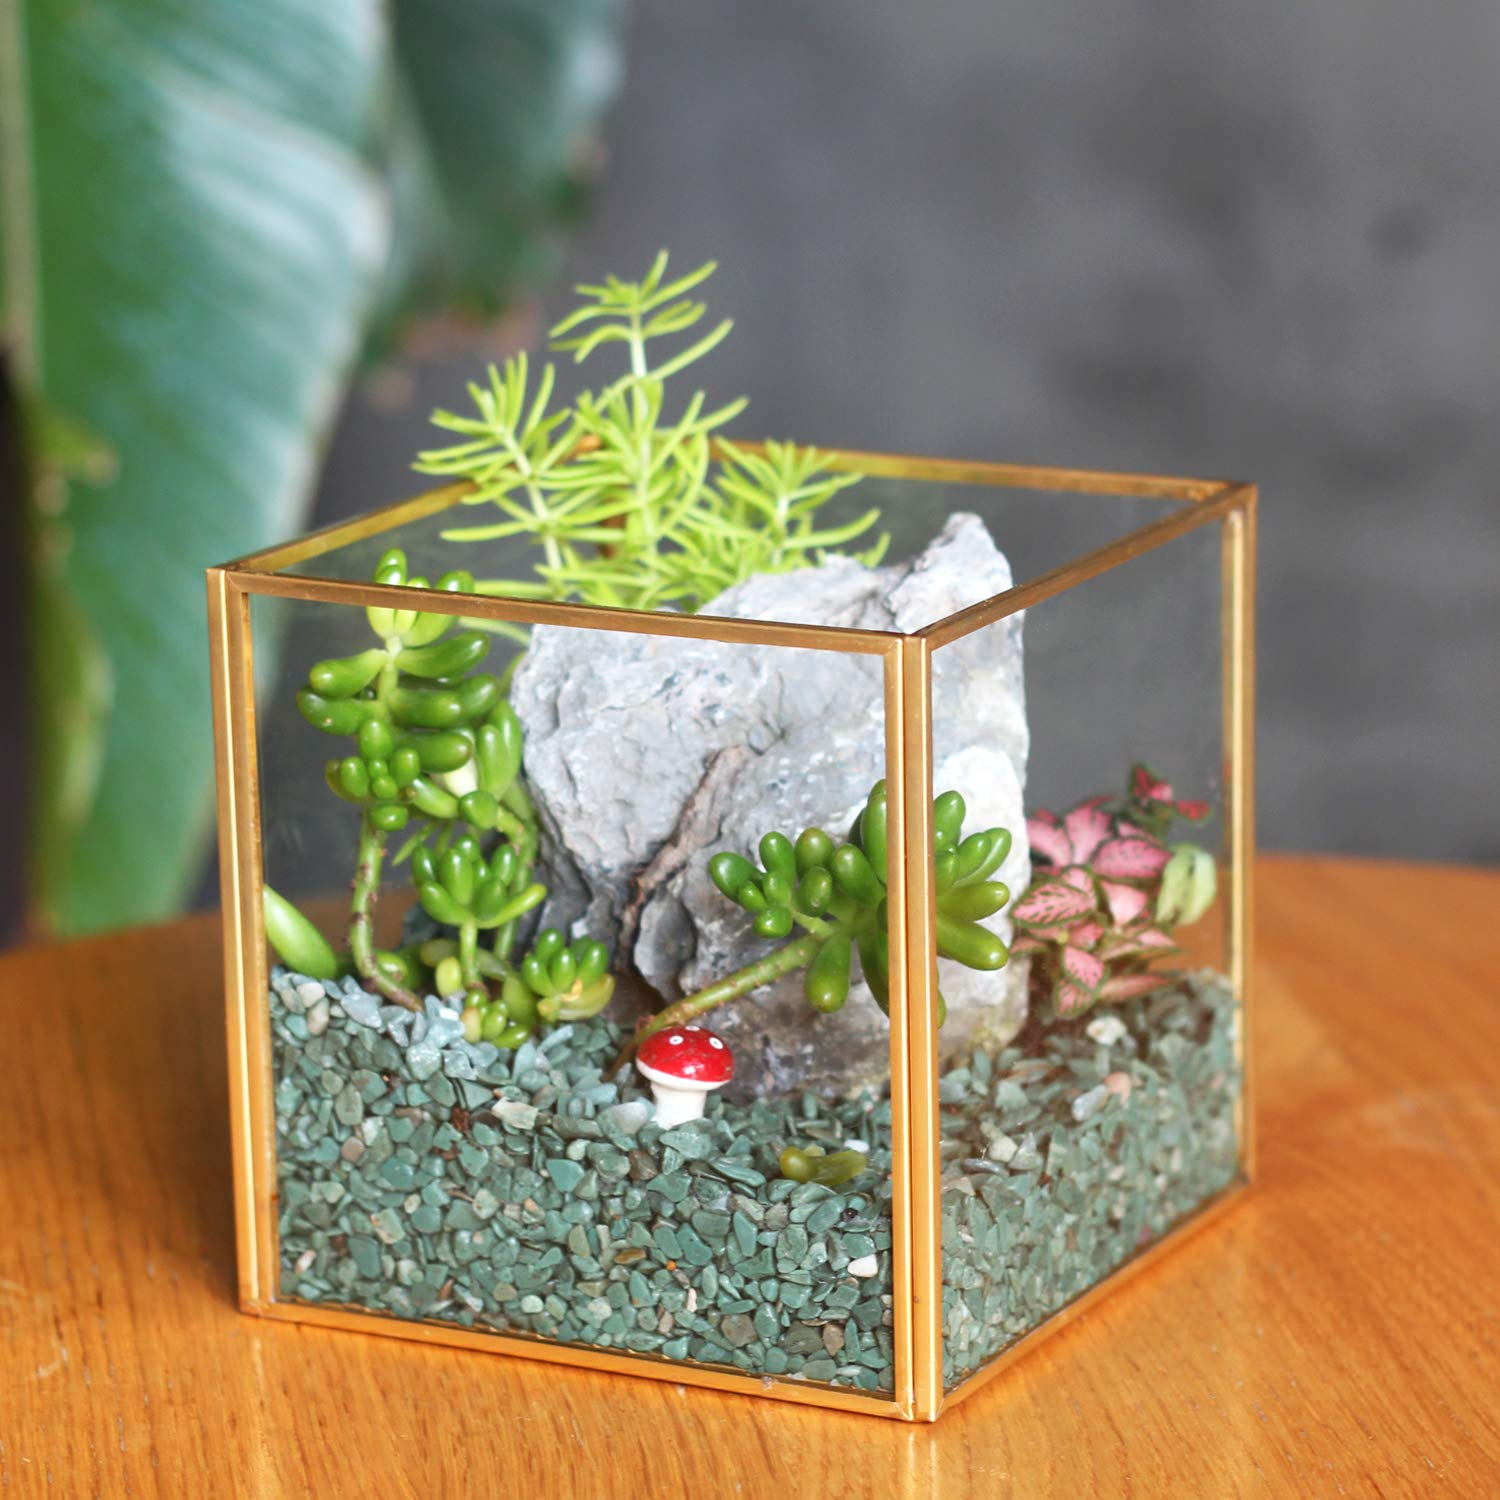 Kimdio Geometric Decorative Terrarium Cube Inclined Clear Glass Planter Tabletop Black Small Air Plant Holder Display Box Succulent Moss Flower Pot Containers DIY Centerpiece -5 inch